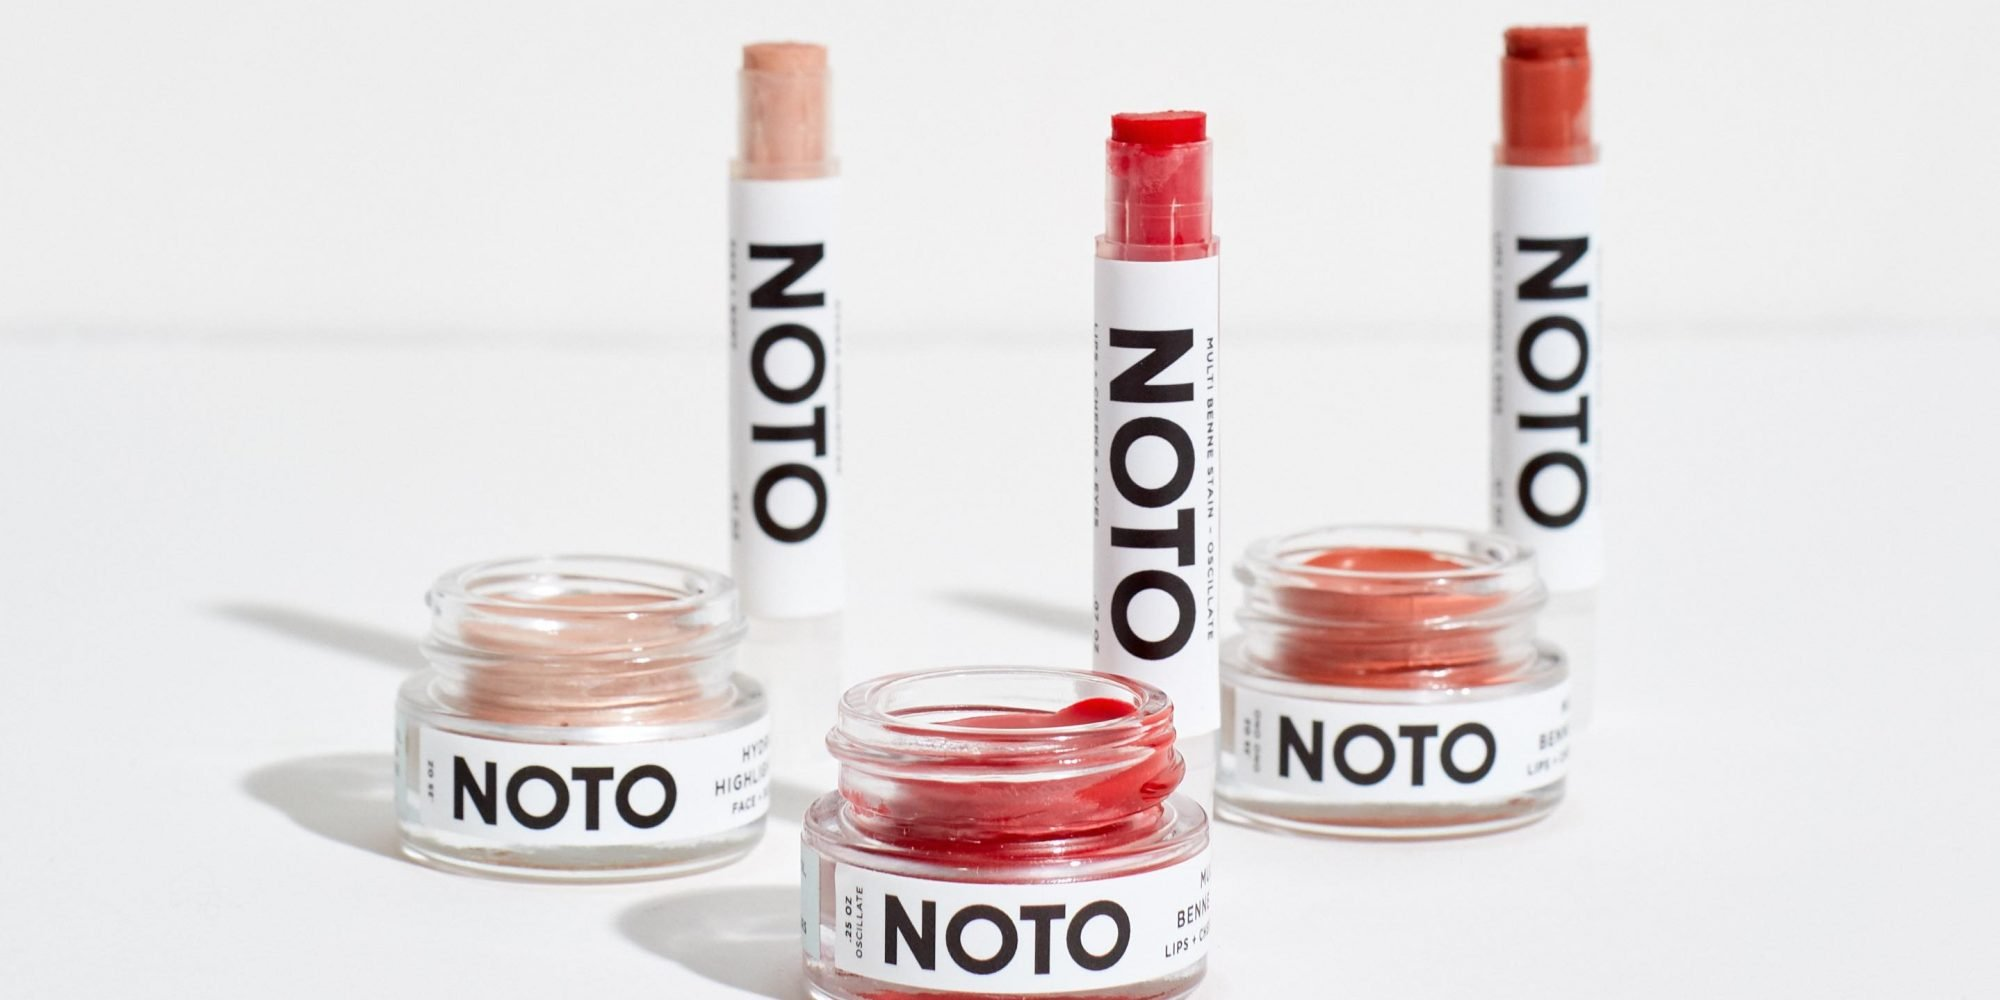 Noto Botanics Set To Stretch Into Retail As Its Sales Soar At Wholesale